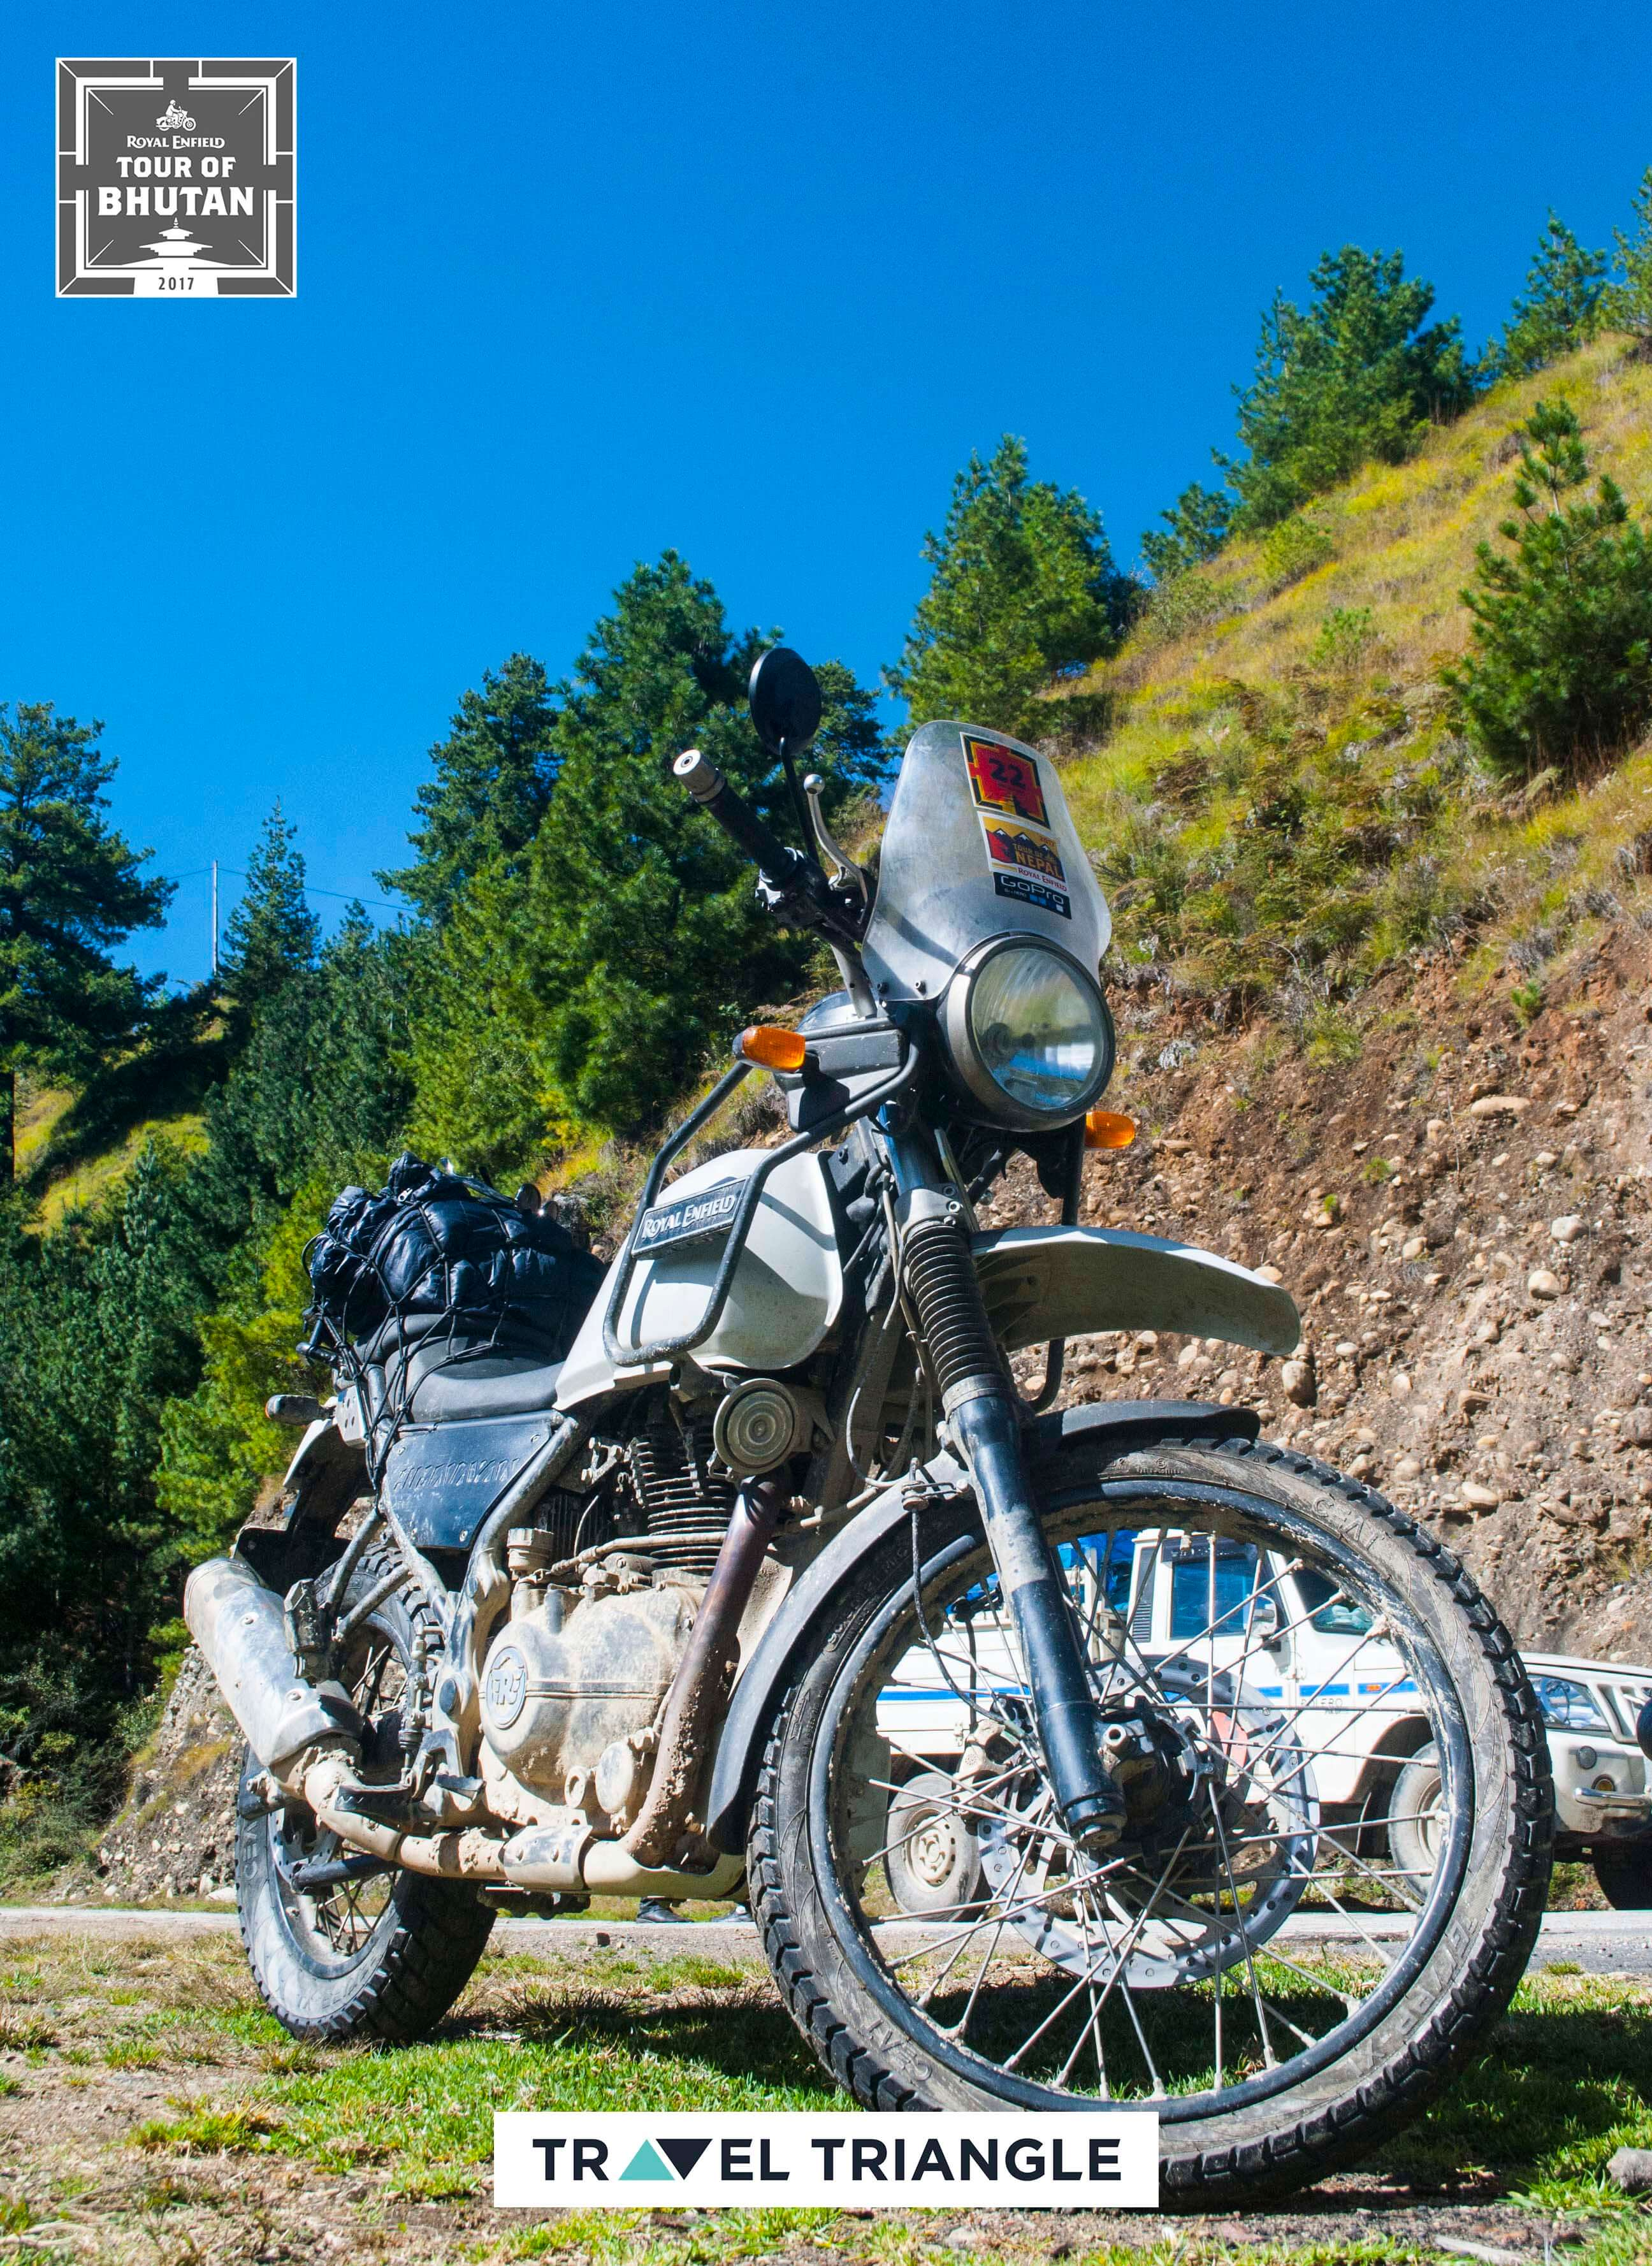 royal enfield india bhutan road trip: a royal enfield